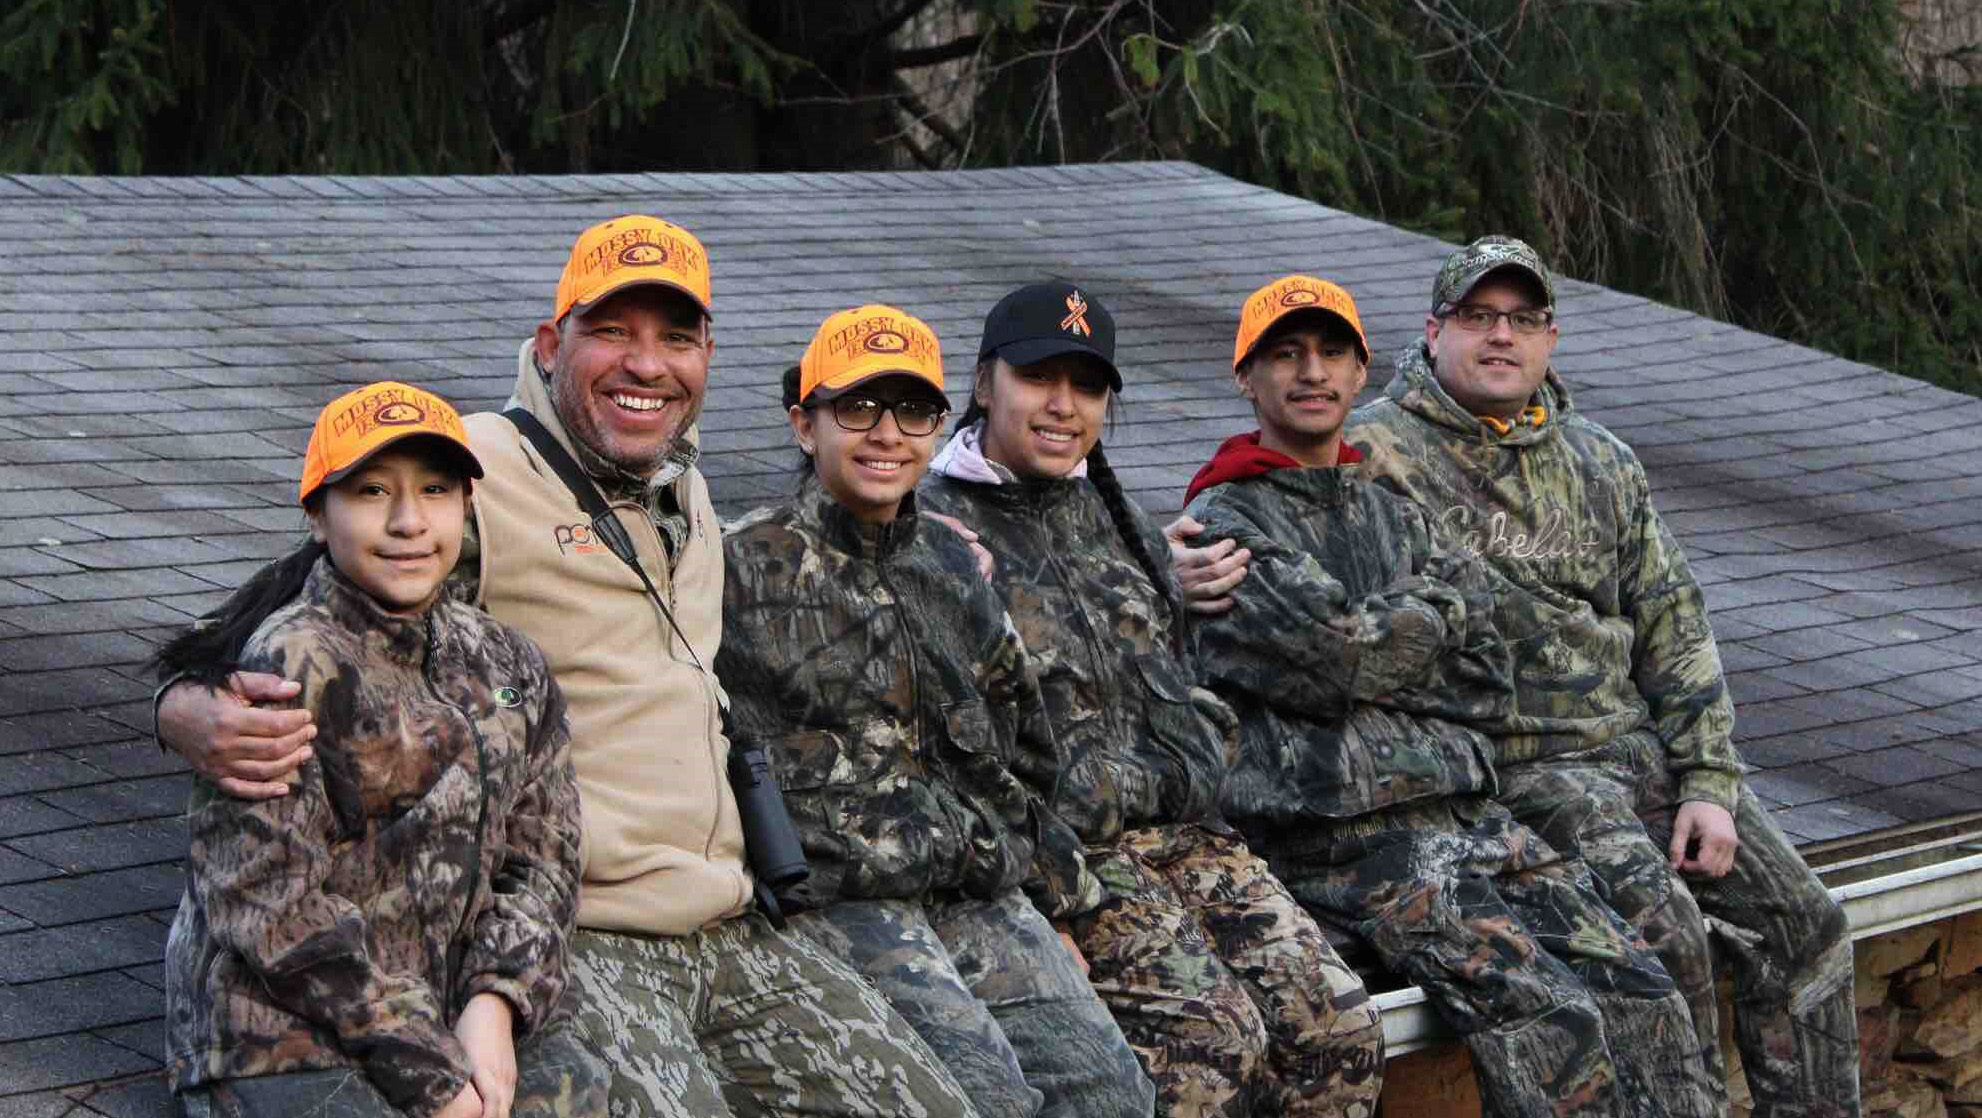 6 Tips for Introducing Kids to Hunting